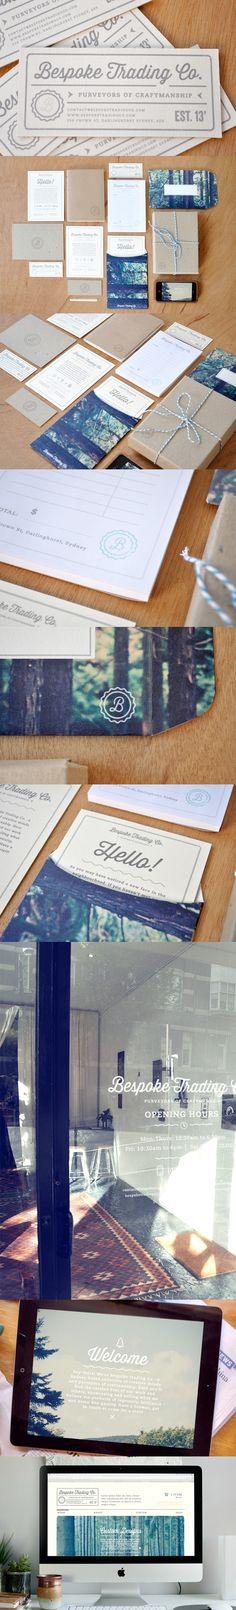 Bespoke Trading Co / by Olivia King / logo / identity / branding / stationary / application / business card / rural / natural / rustic / outdoorsy / clean / trees